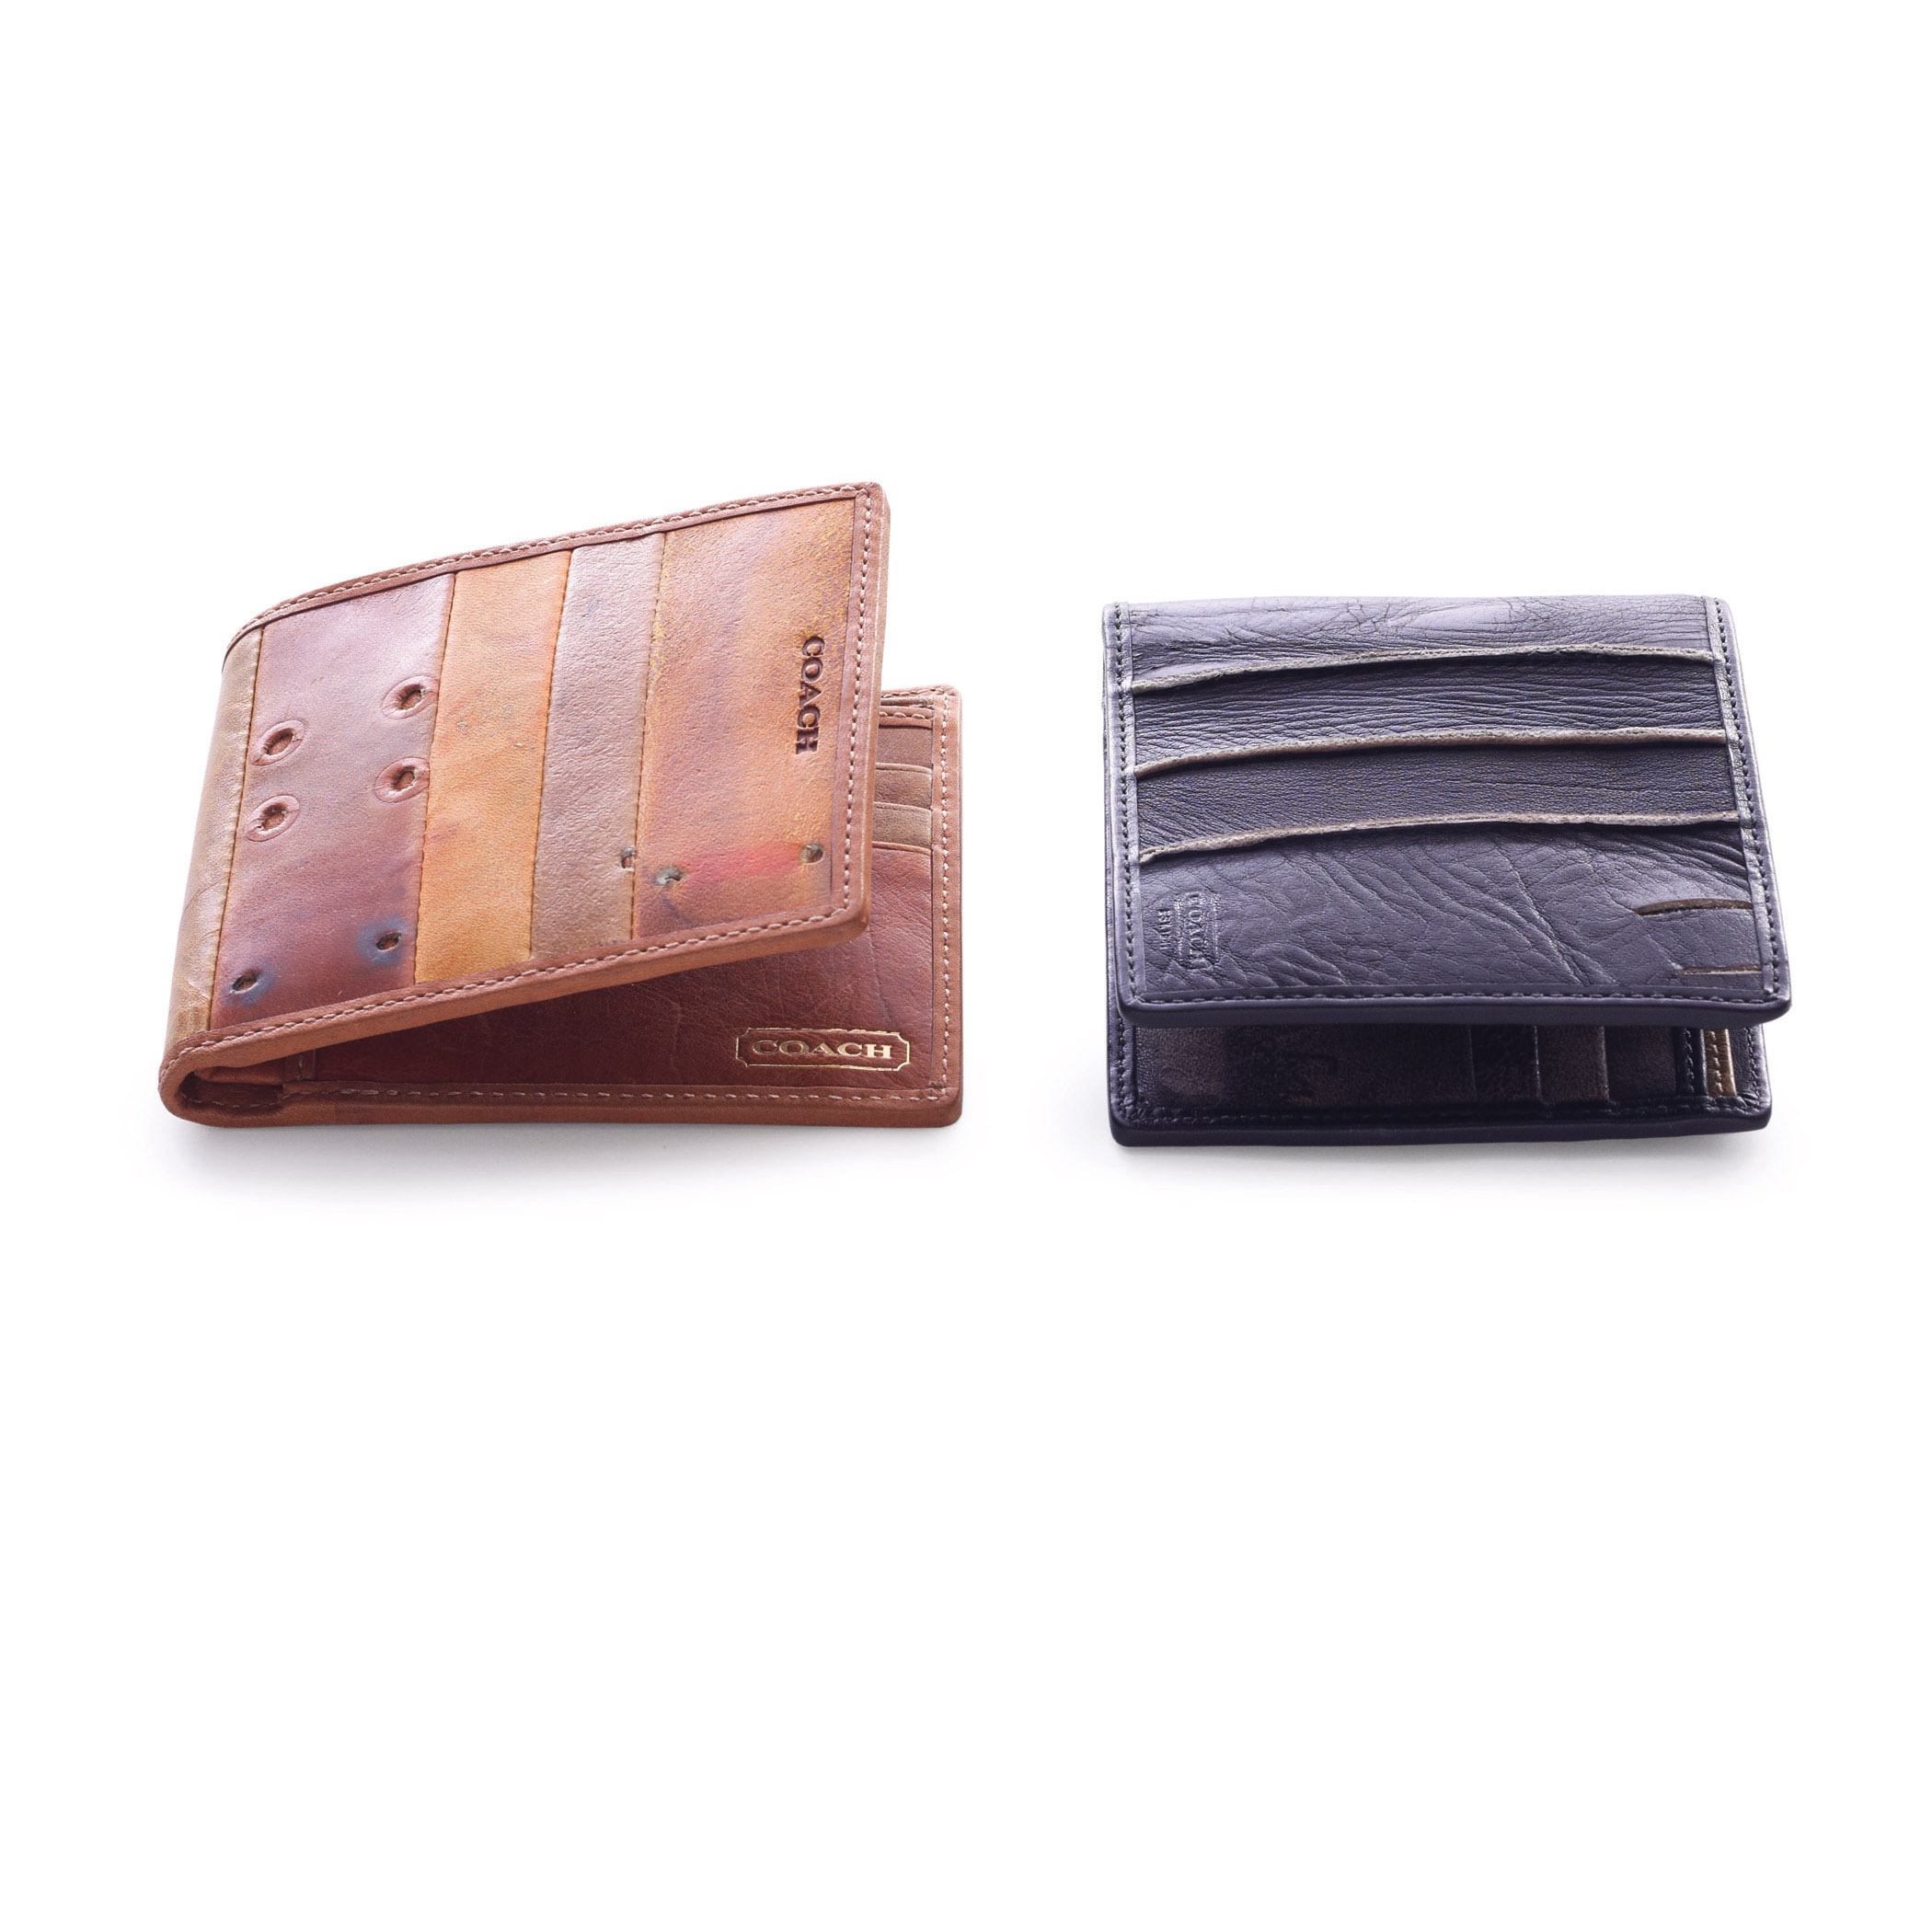 Recycled baseball glove wallet - Dimaggio May Have Hit One Past This Wallet